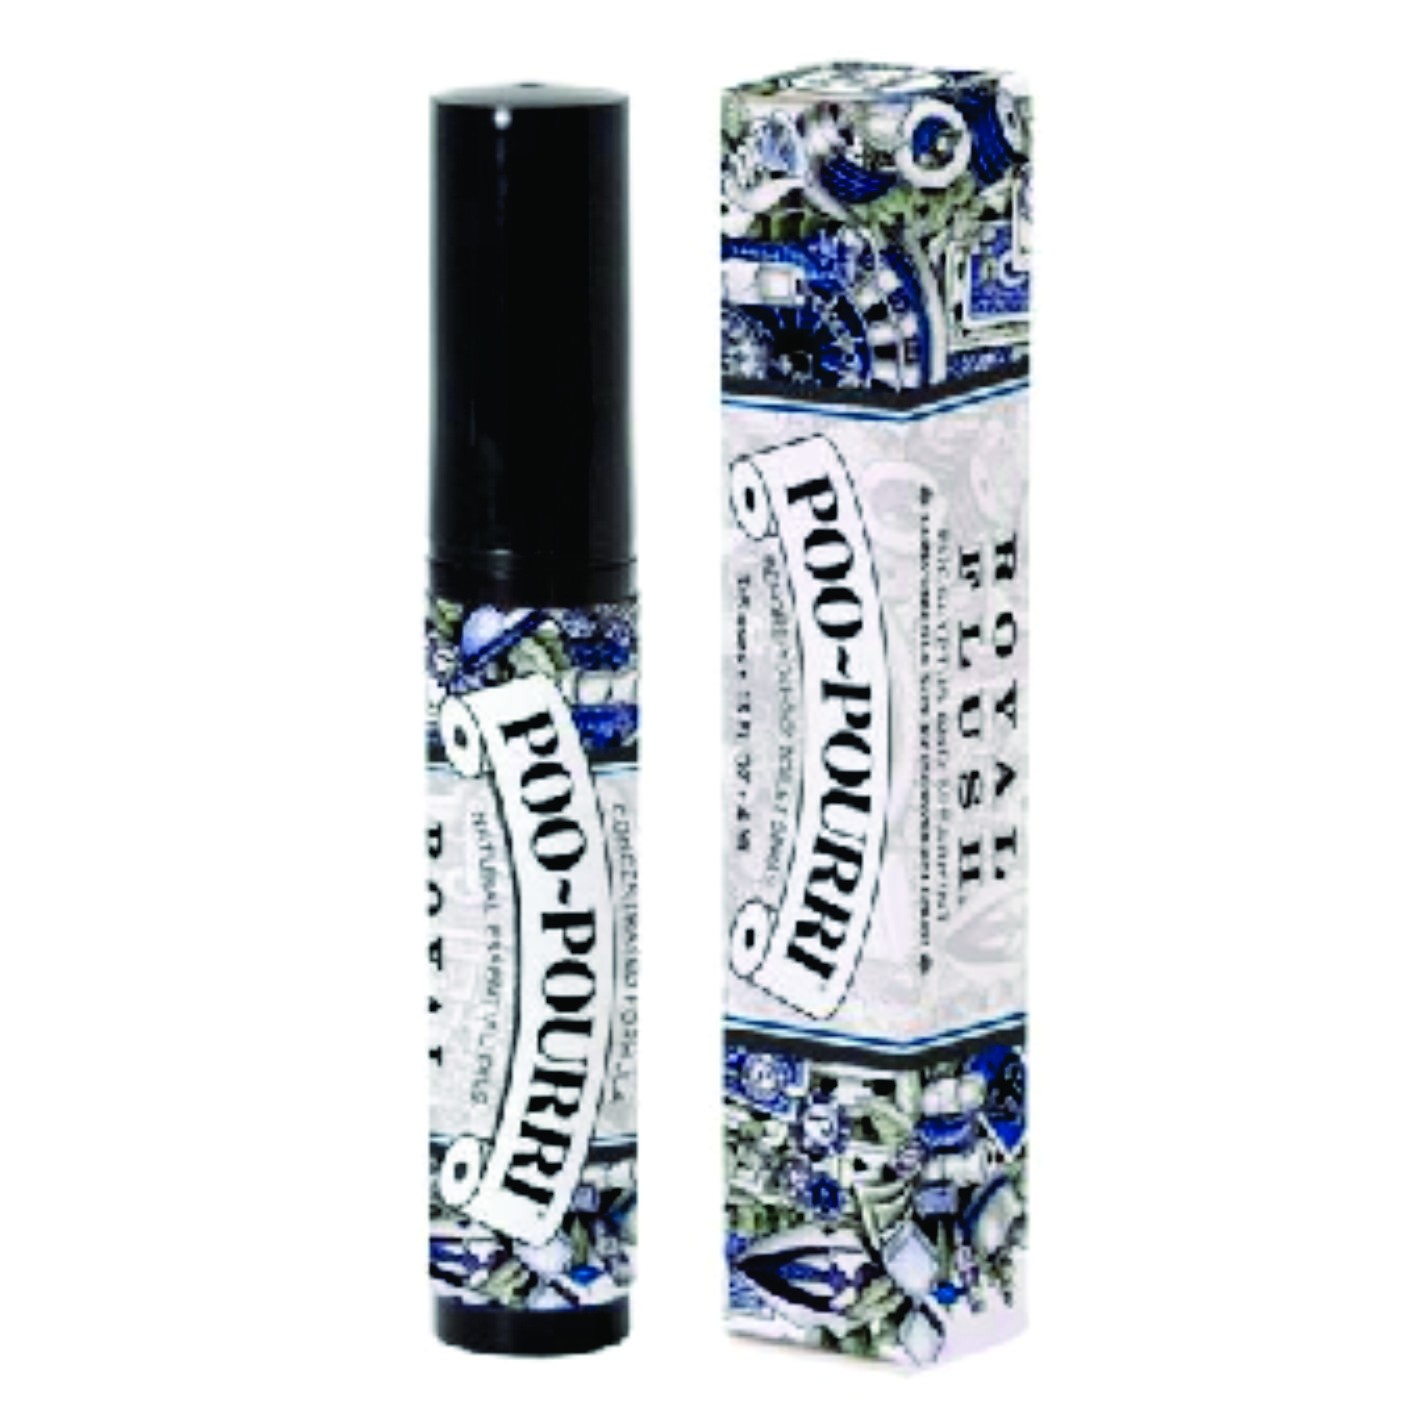 PooPourri Pocket Size Spritz - Bathroom odor neutralizer